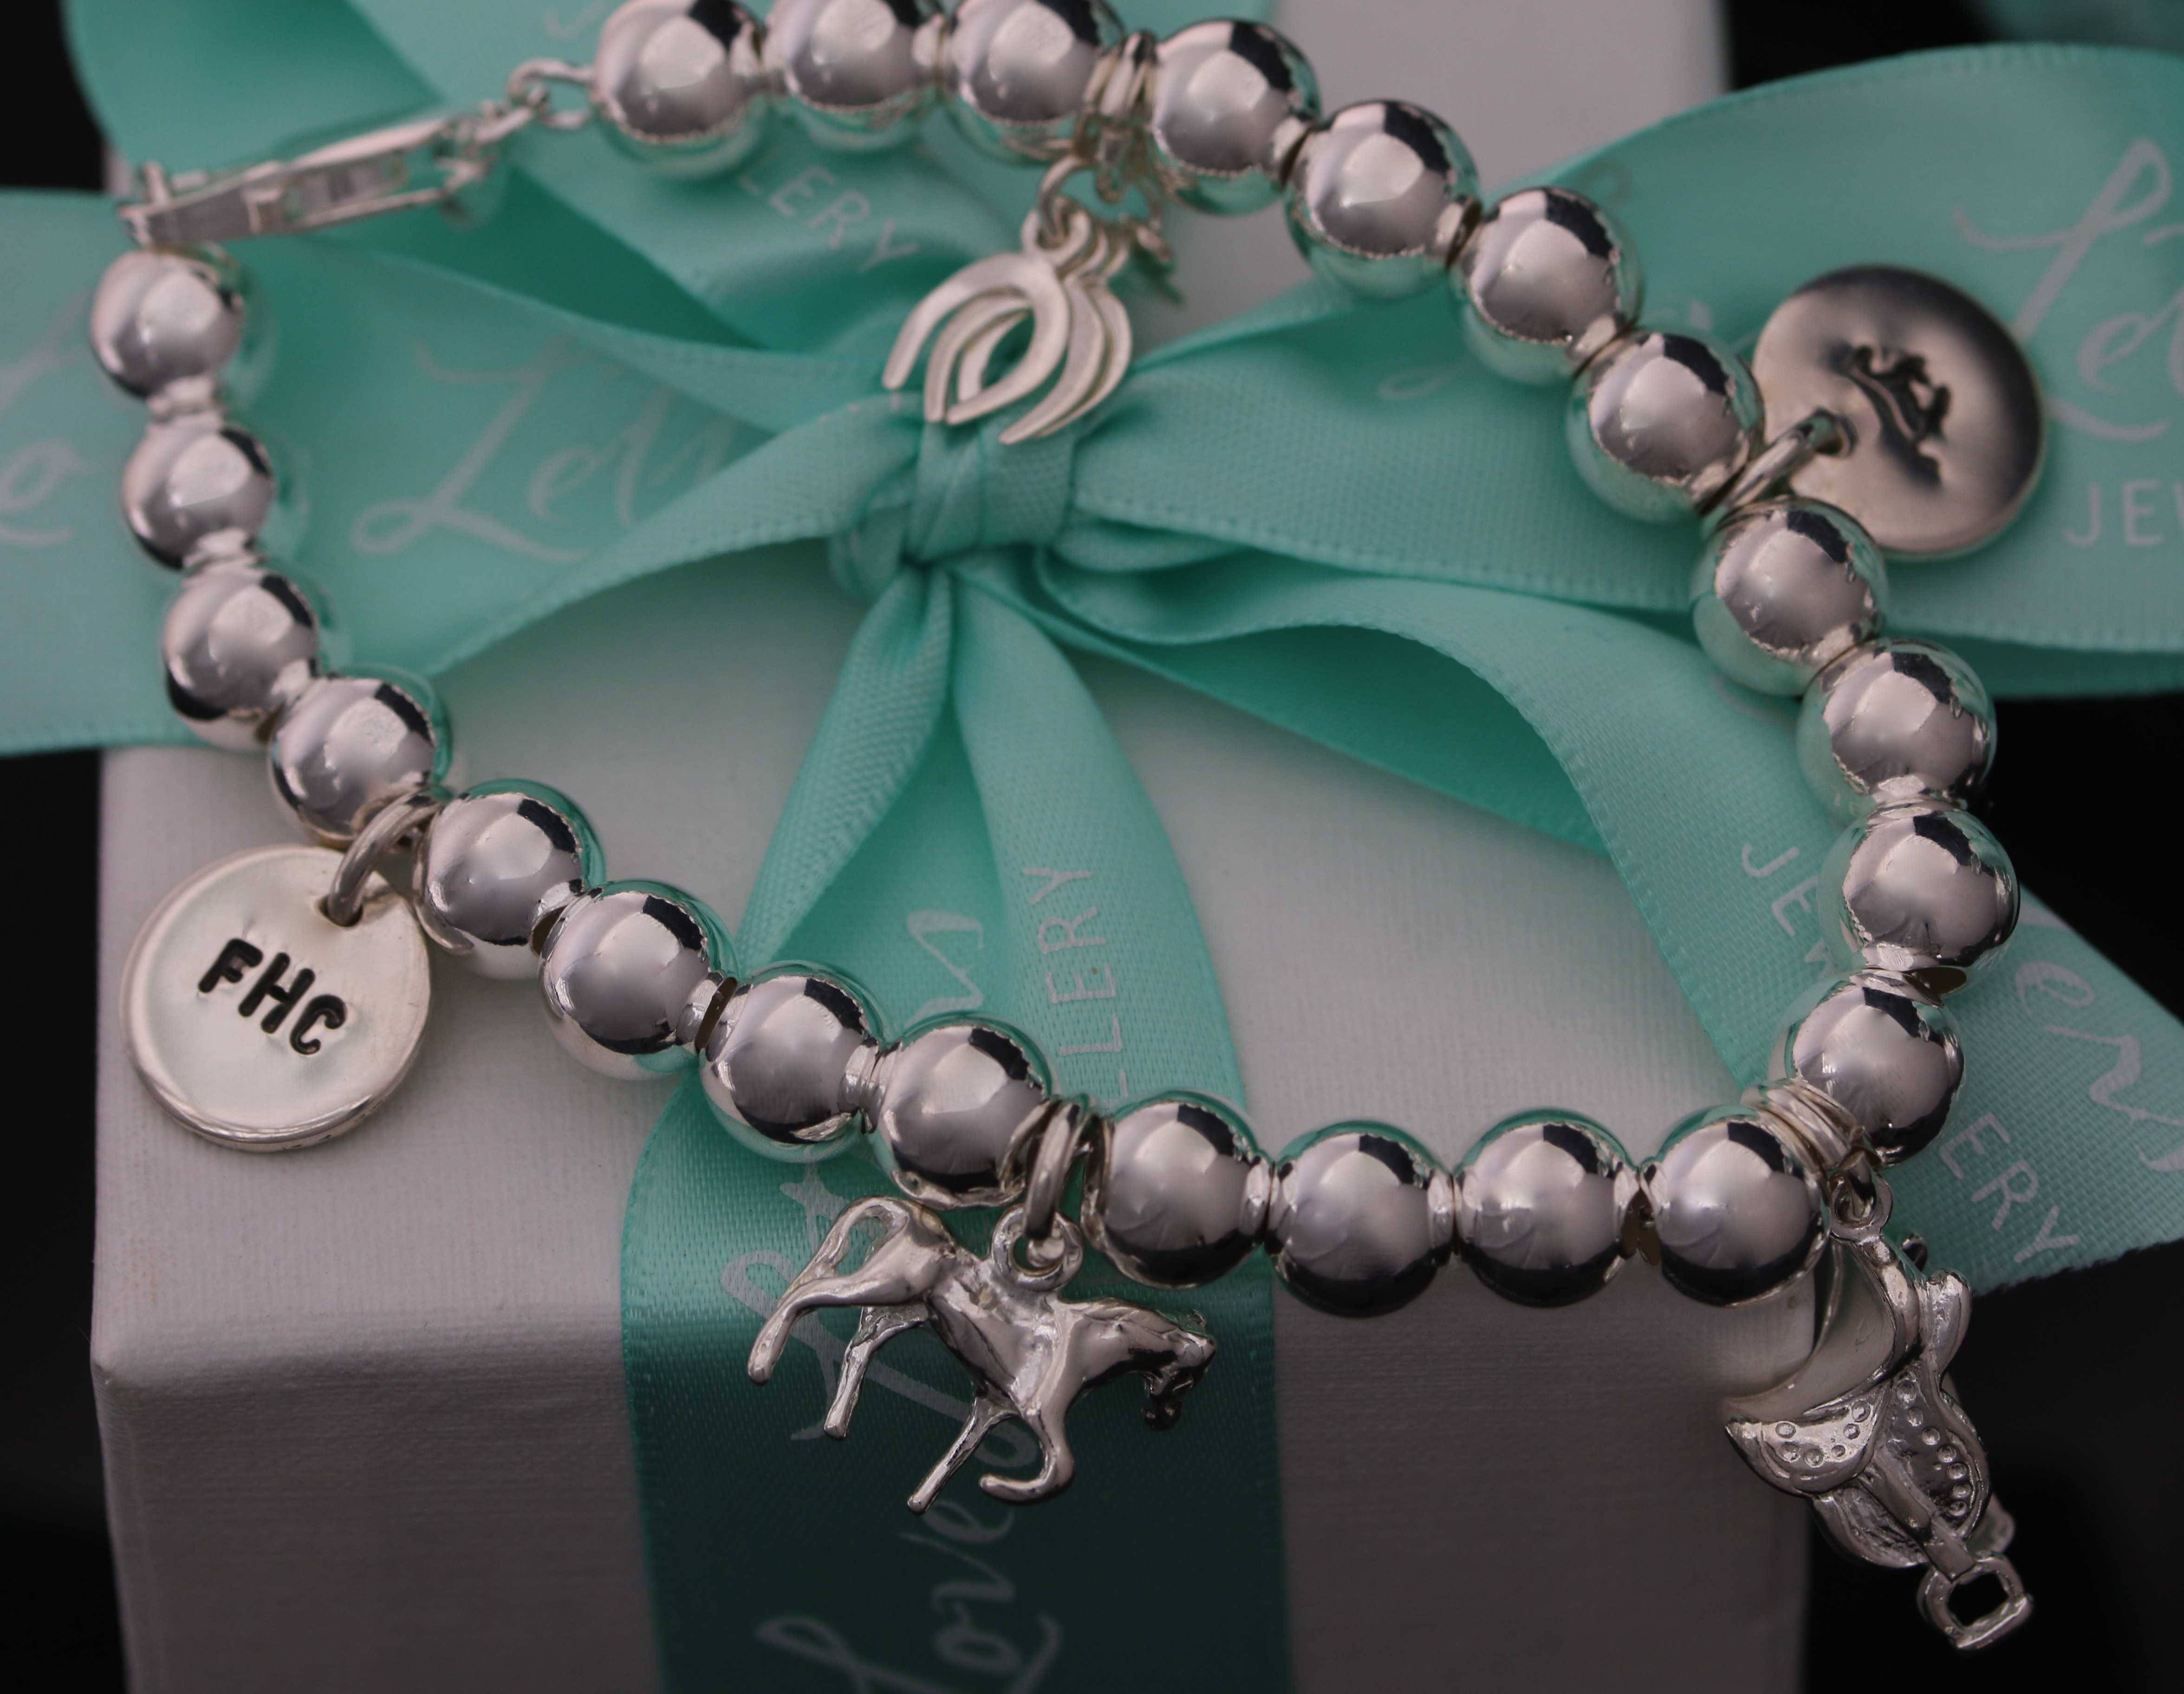 47231e38fd4dc Adore' Sterling Silver Ball Bracelet with an Equine Theme! - LoveLetters